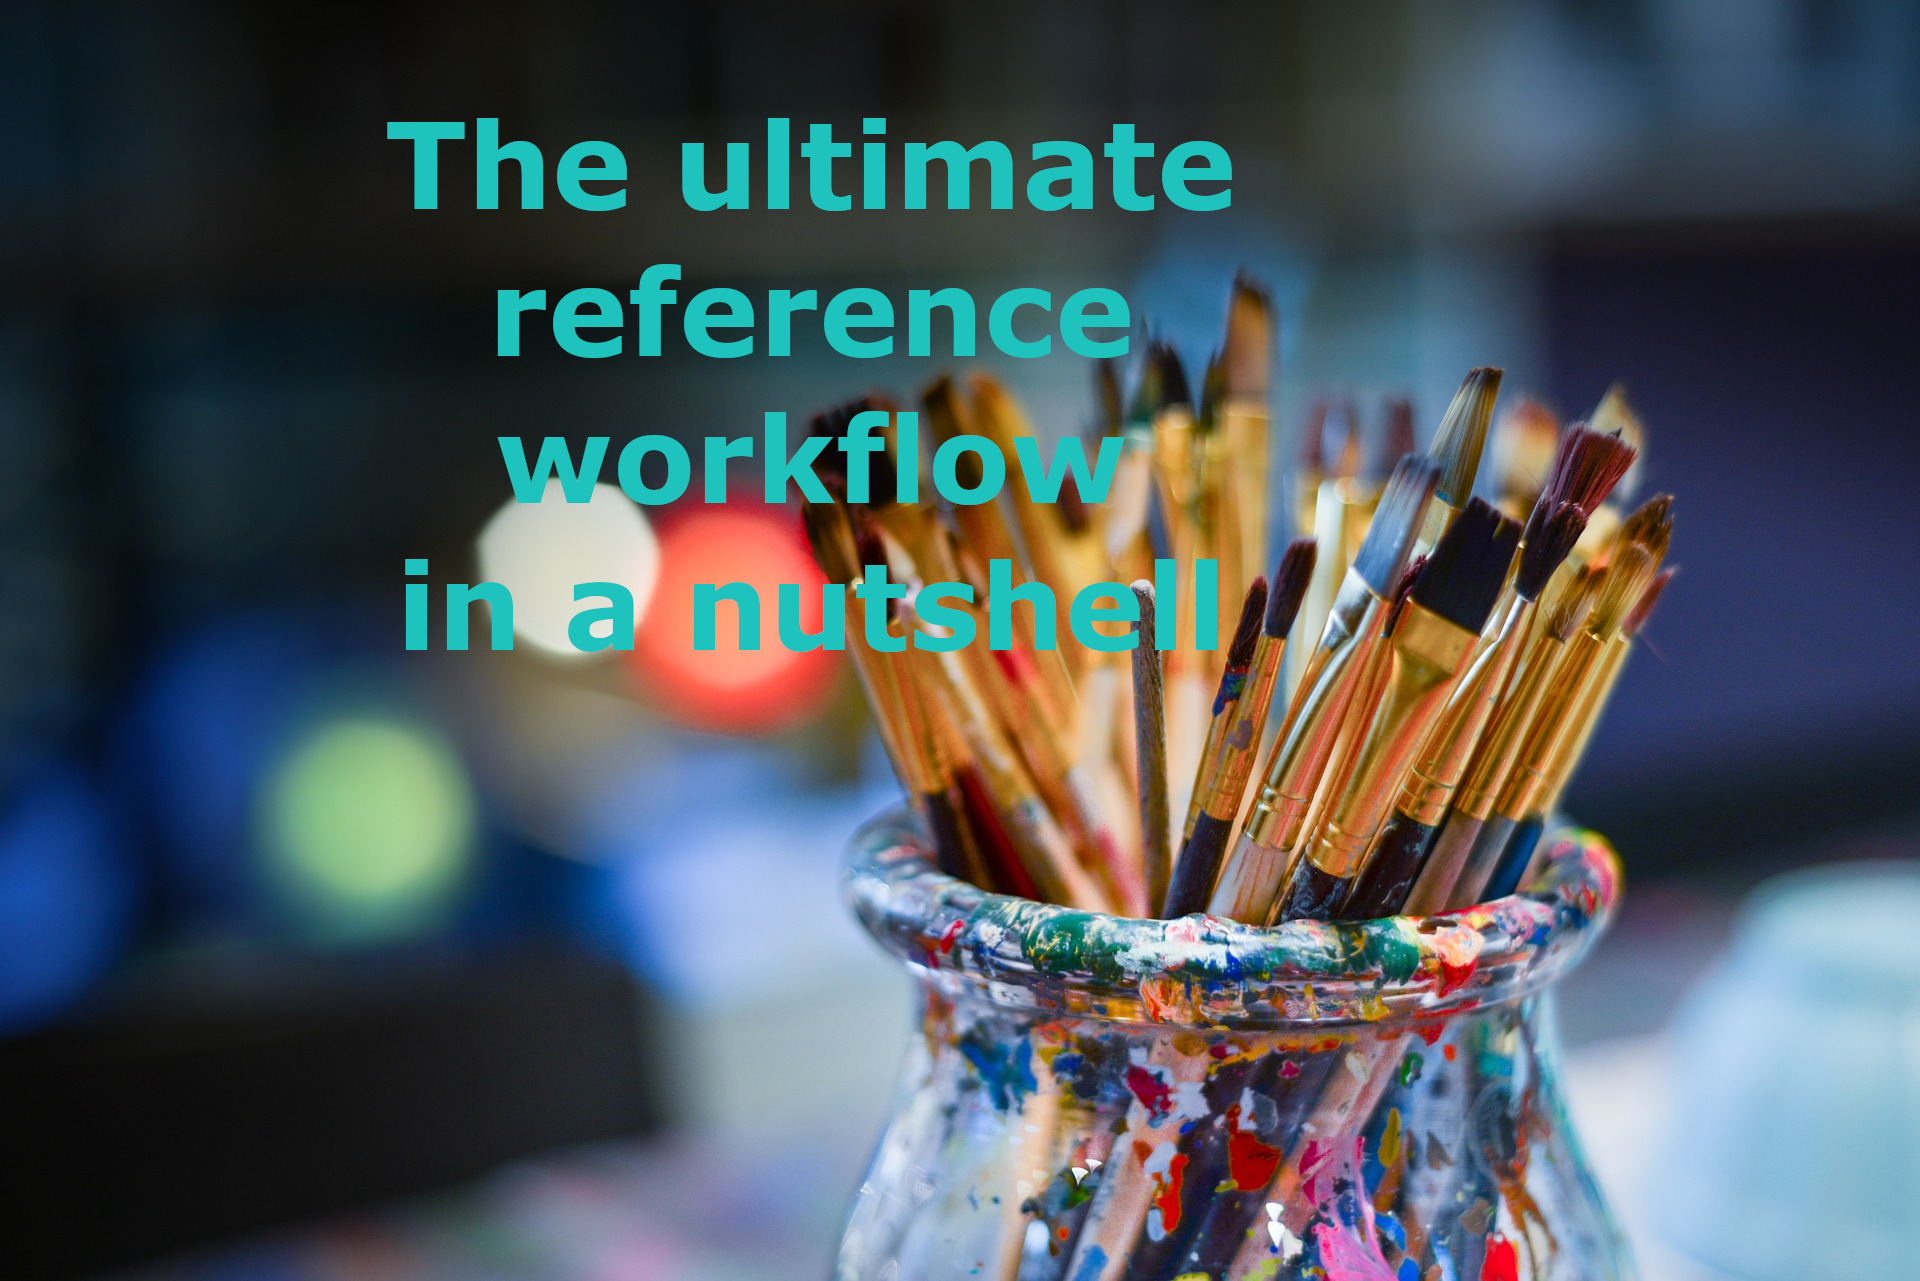 the_ultimate_reference_workflow_in_a_nutshell_featured